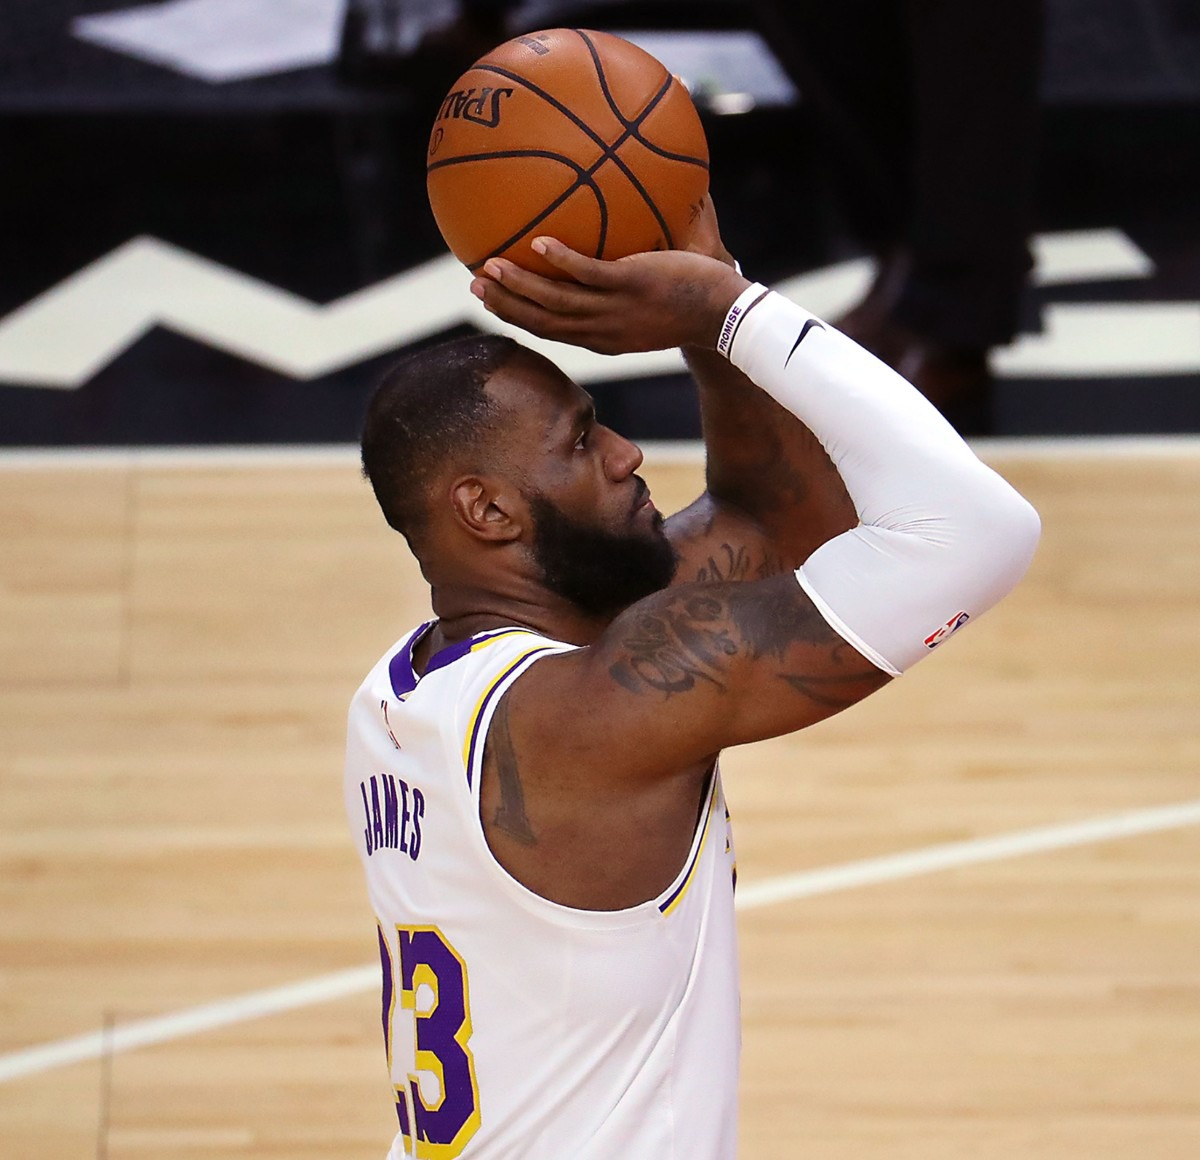 <strong>Los Angeles Lakers forward LeBron James (23) shoots a free throw during a Jan. 3, 2021 game against the Memphis Grizzlies at the FedExForum.</strong> (Patrick Lantrip/Daily Memphian)